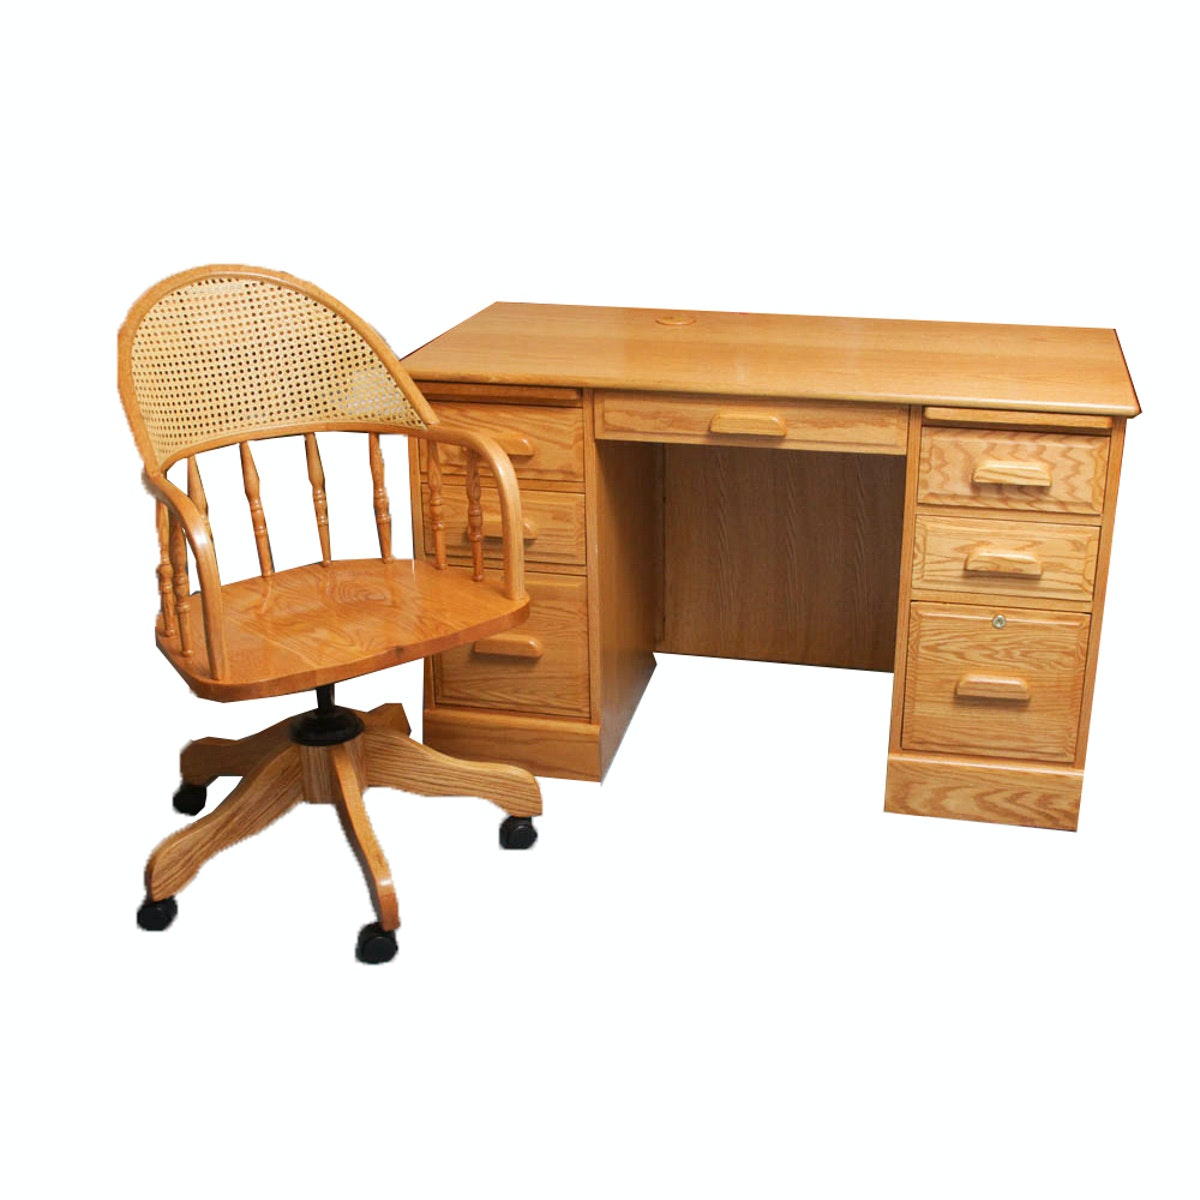 """Woodley's """"WinnersOnly"""" Quality Oak Desk and Oak and Rattan Office Chair"""